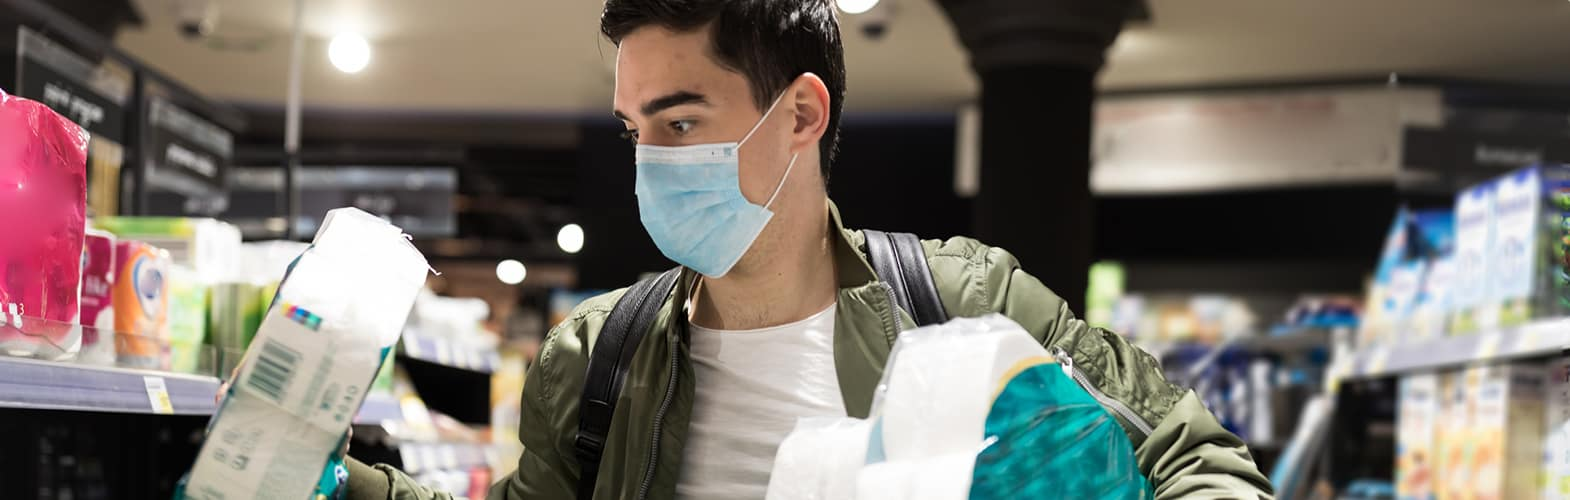 Young Man shopping in a supermarket for toilet paper wearing a medical mask.